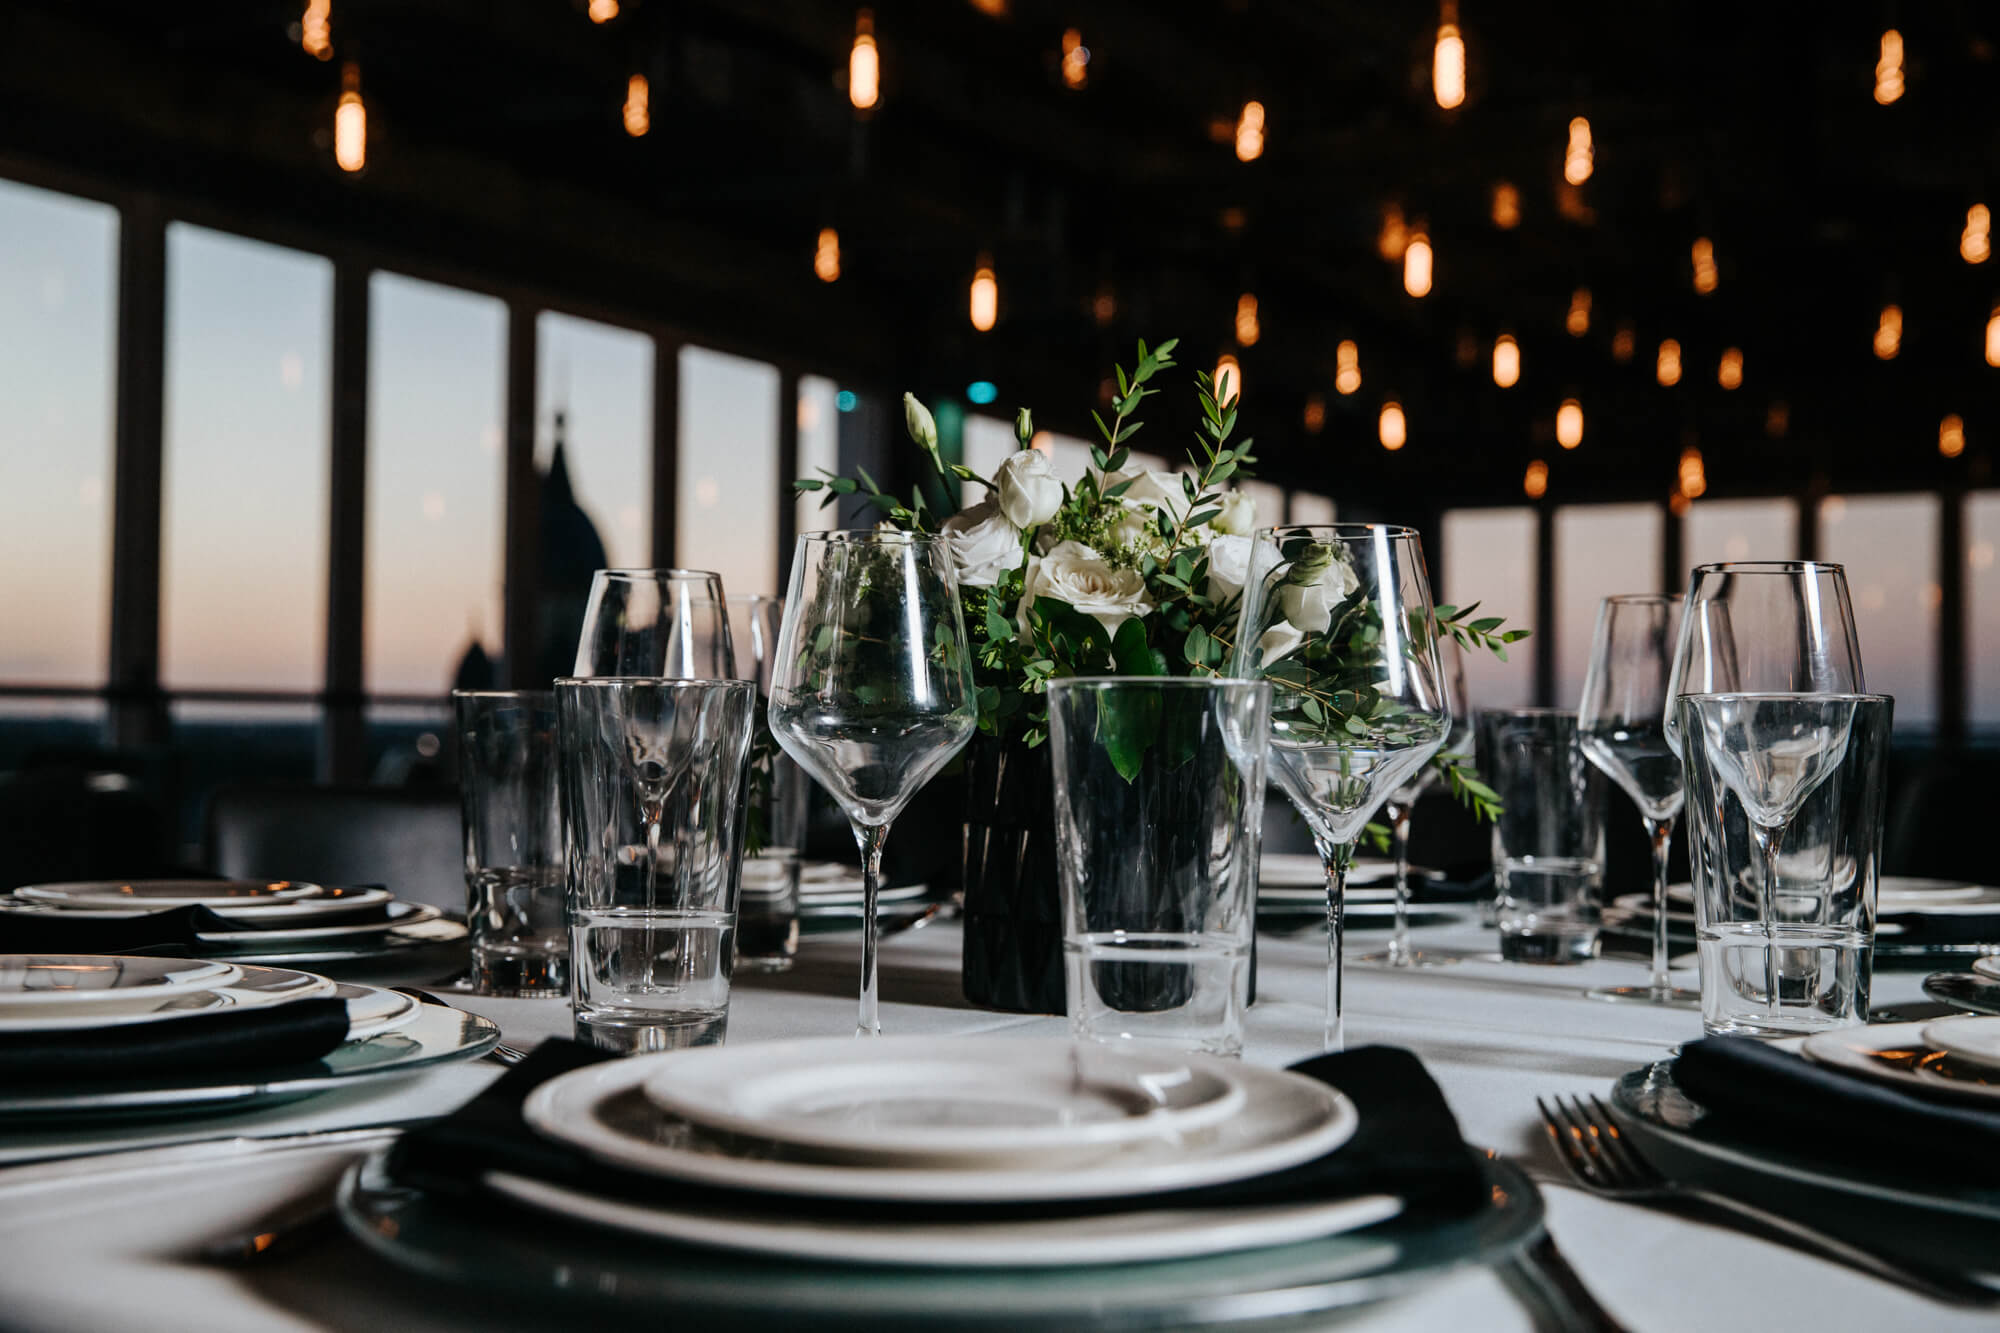 Place settings and beautiful rose bouquets showcase Sunago Bell's potential for events. In the background, you see the twinkling Edison bulbs and a blurred view of the Downtown Denton Square.